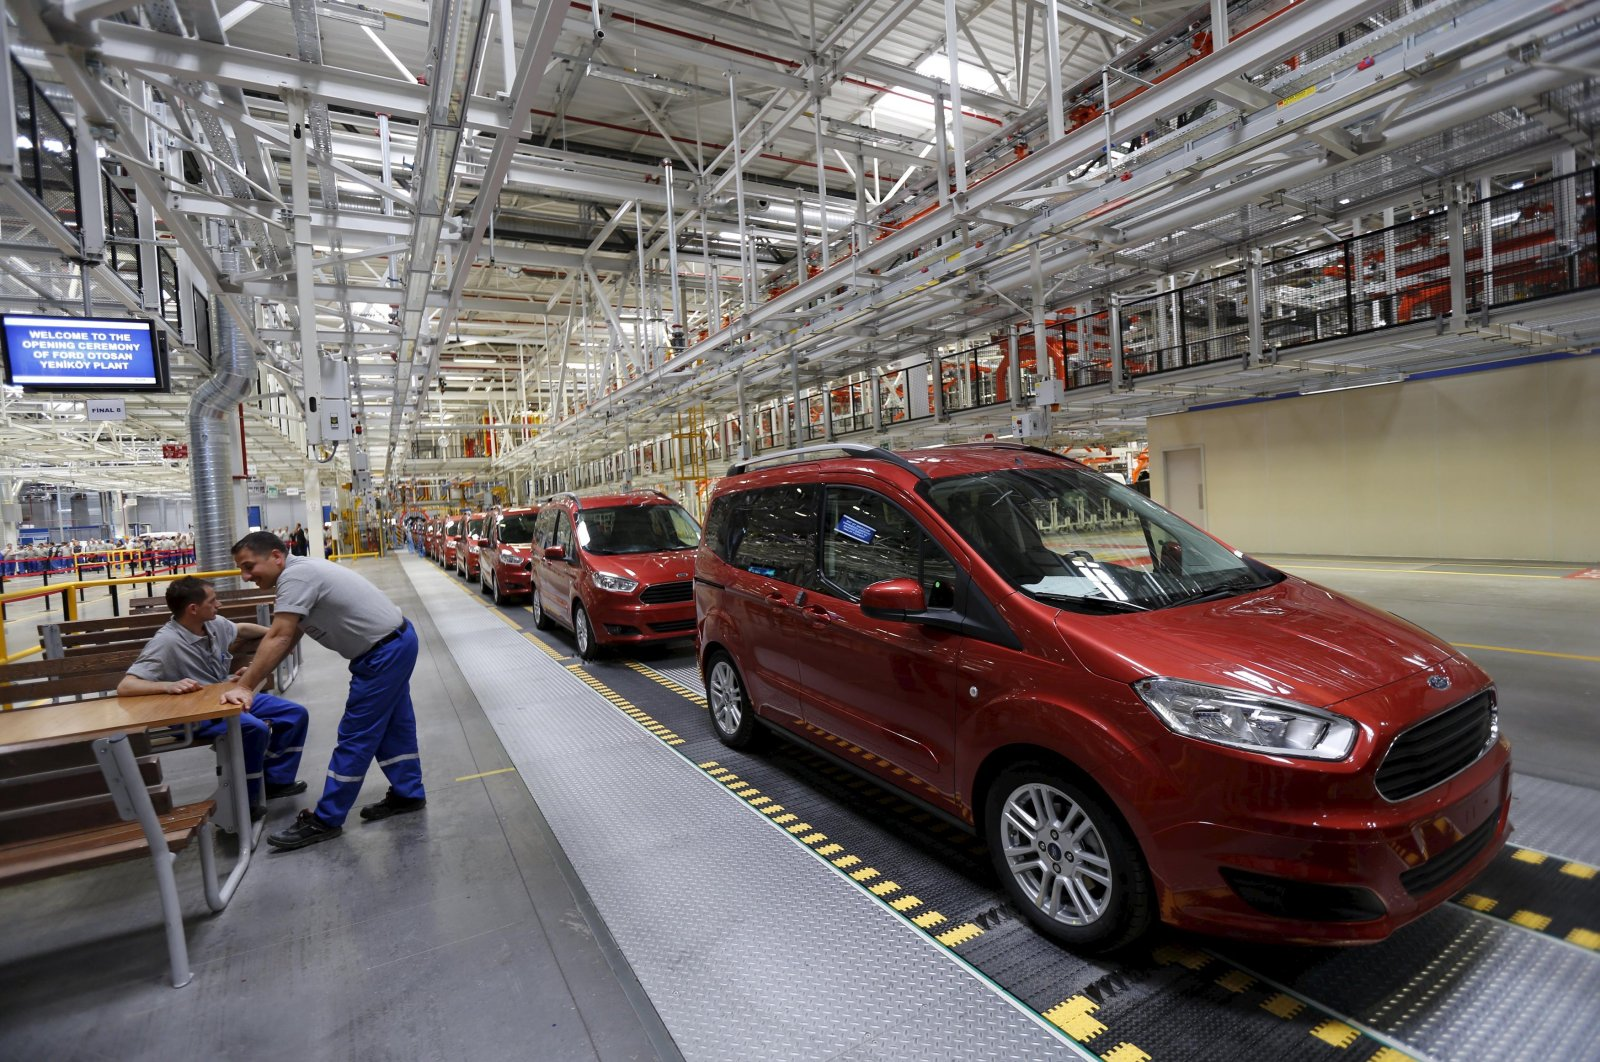 Ford Tourneo Courier light commercial vehicles are pictured at the Ford Otosan Yenikoy car plant in Kocaeli, Turkey, May 22, 2014. (Reuters Photo)